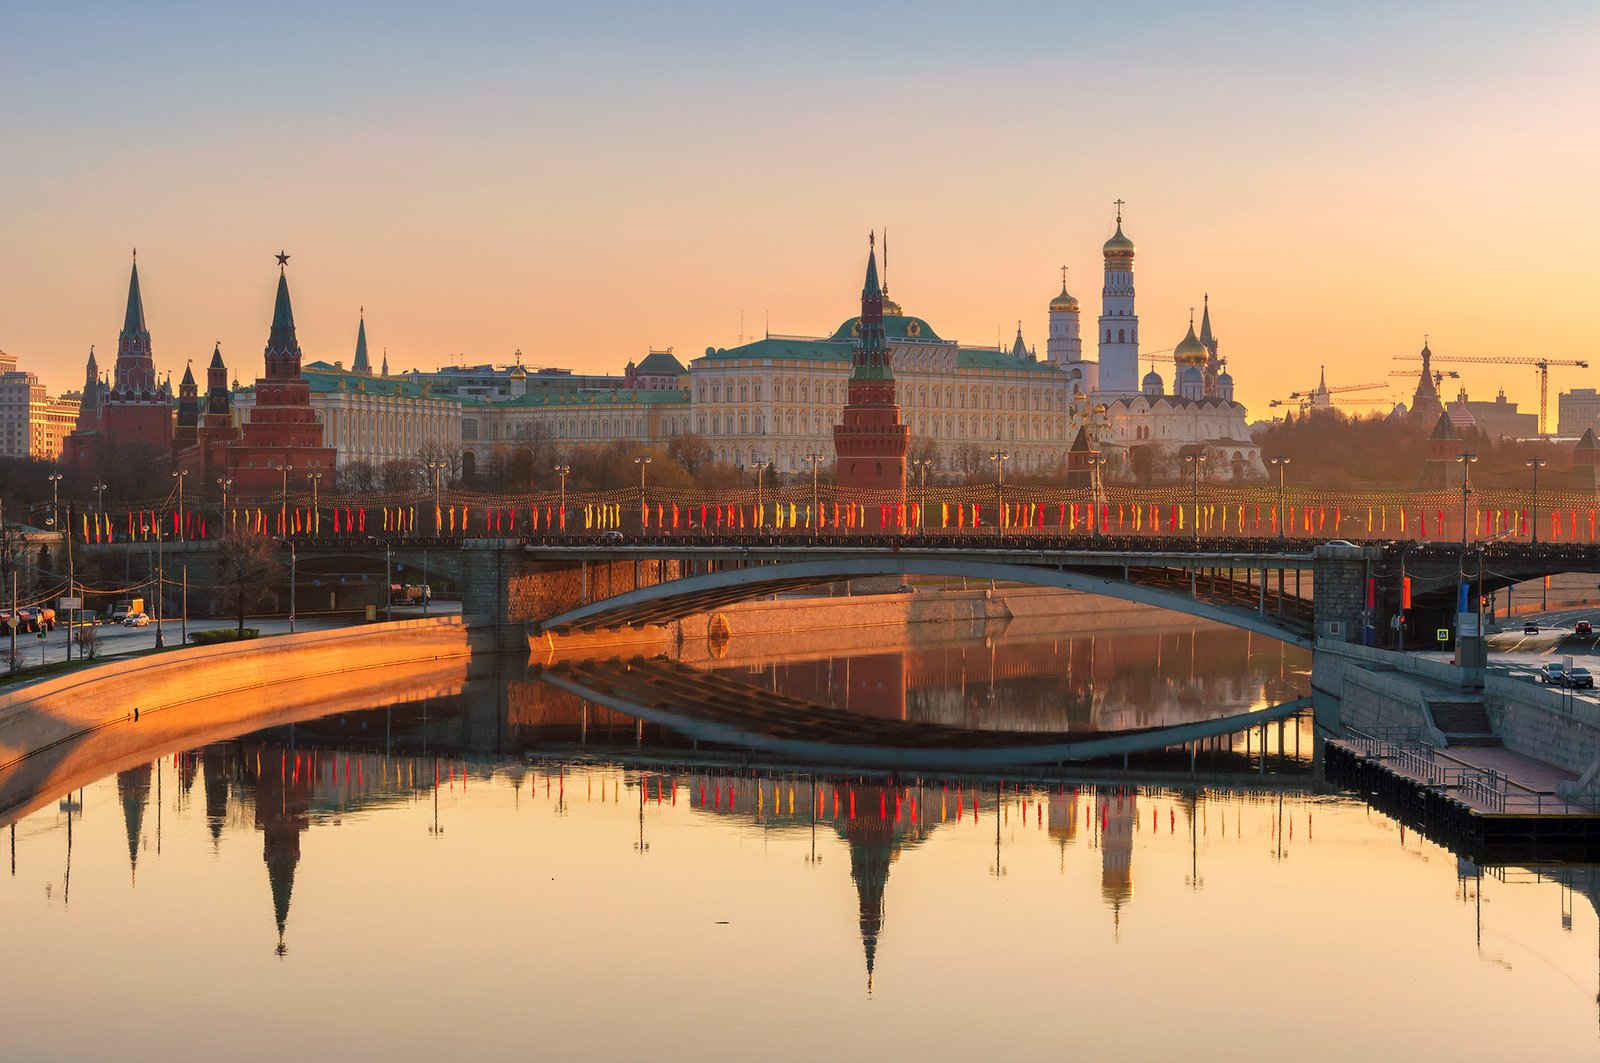 moscow, skyline, kremlin, russia, red, square, architecture, city, cathedral, tower, view, river, morning, travel, landmark, cityscape, sky, panoramic, bridge, dome, reflection, russian, sun, landscape, Dmitry Vinogradov